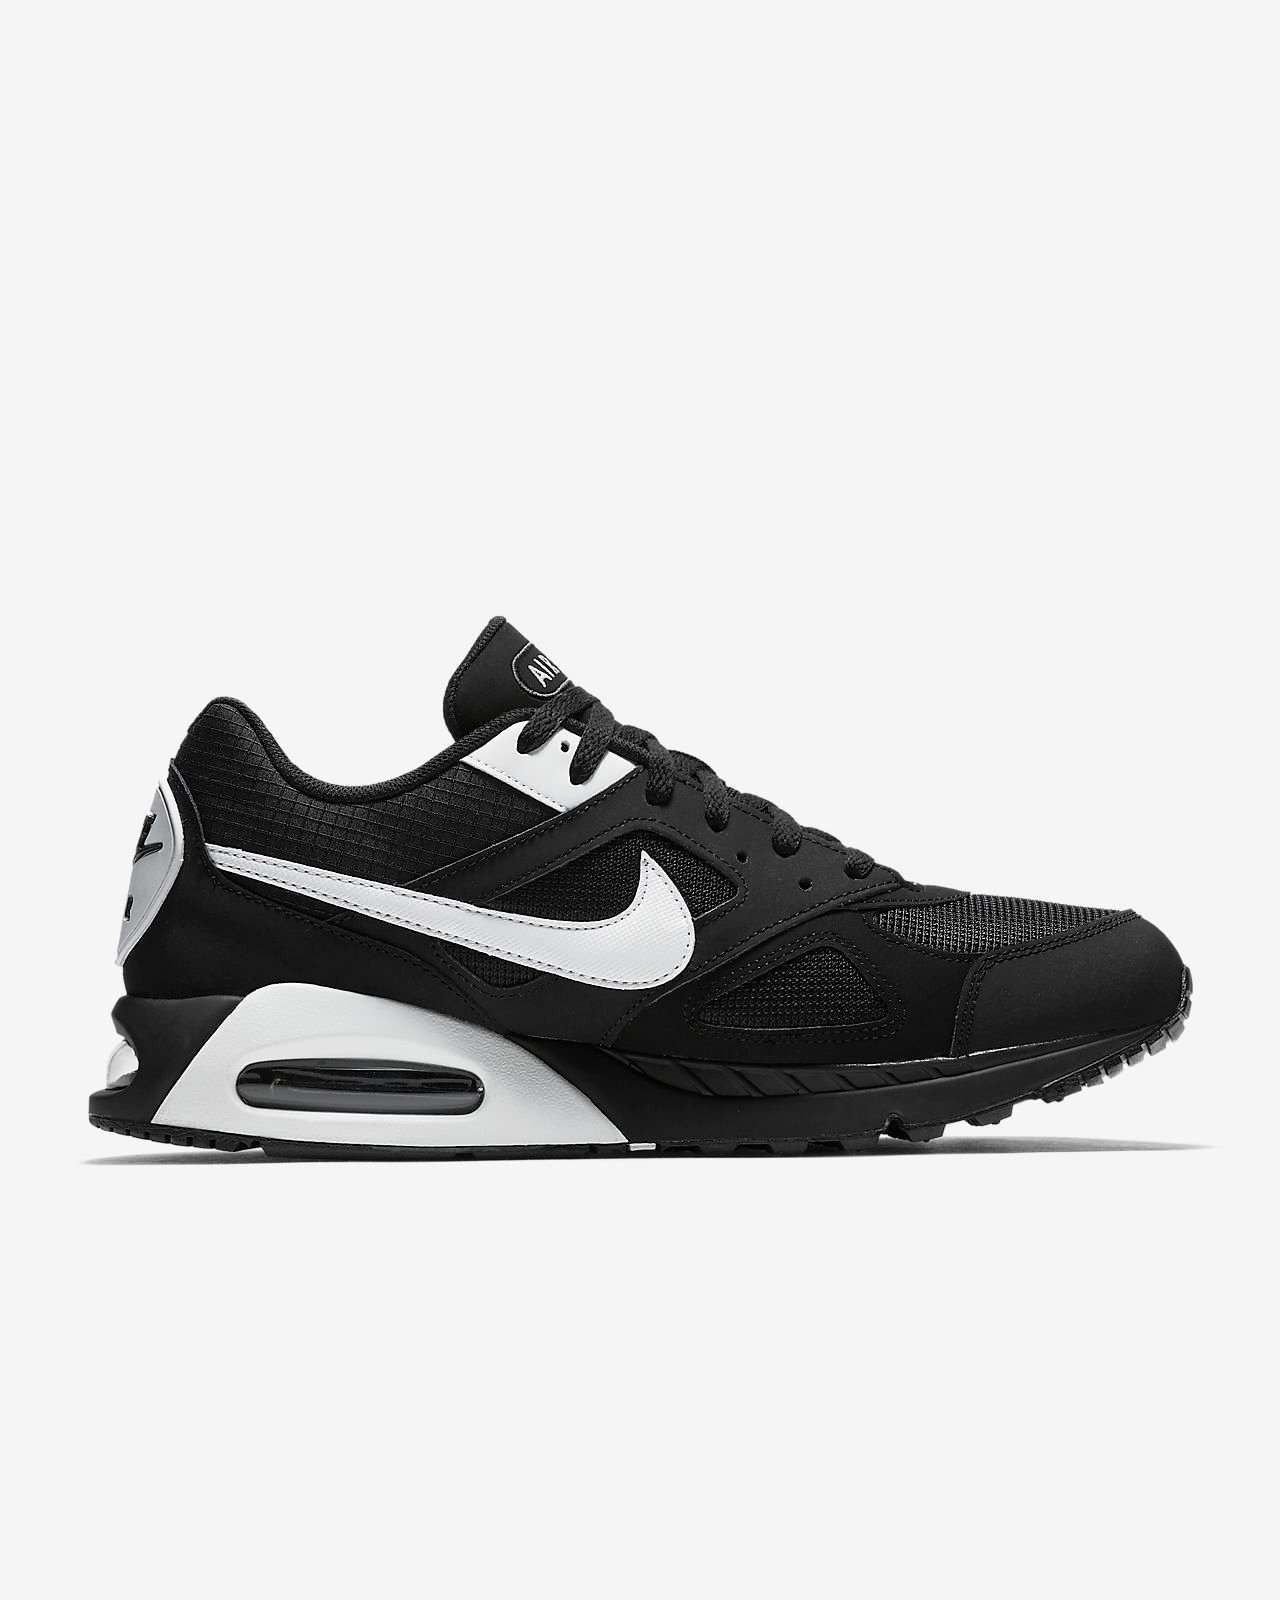 NIKE AIR MAX IVO   The Willwings